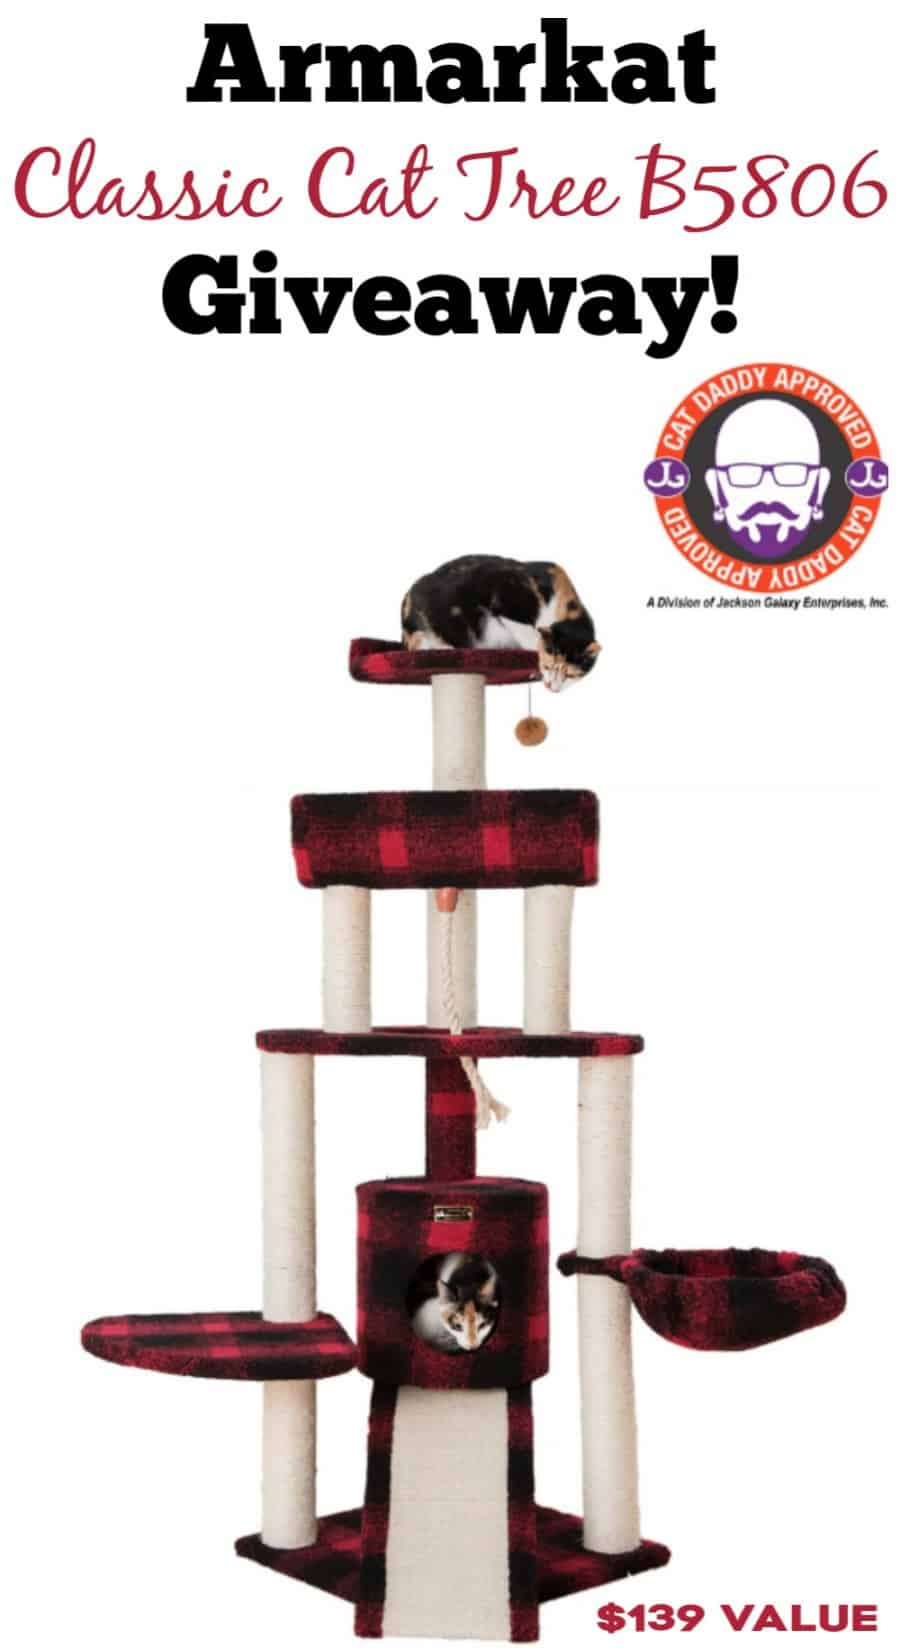 Armarkat Cat Tower Giveaway